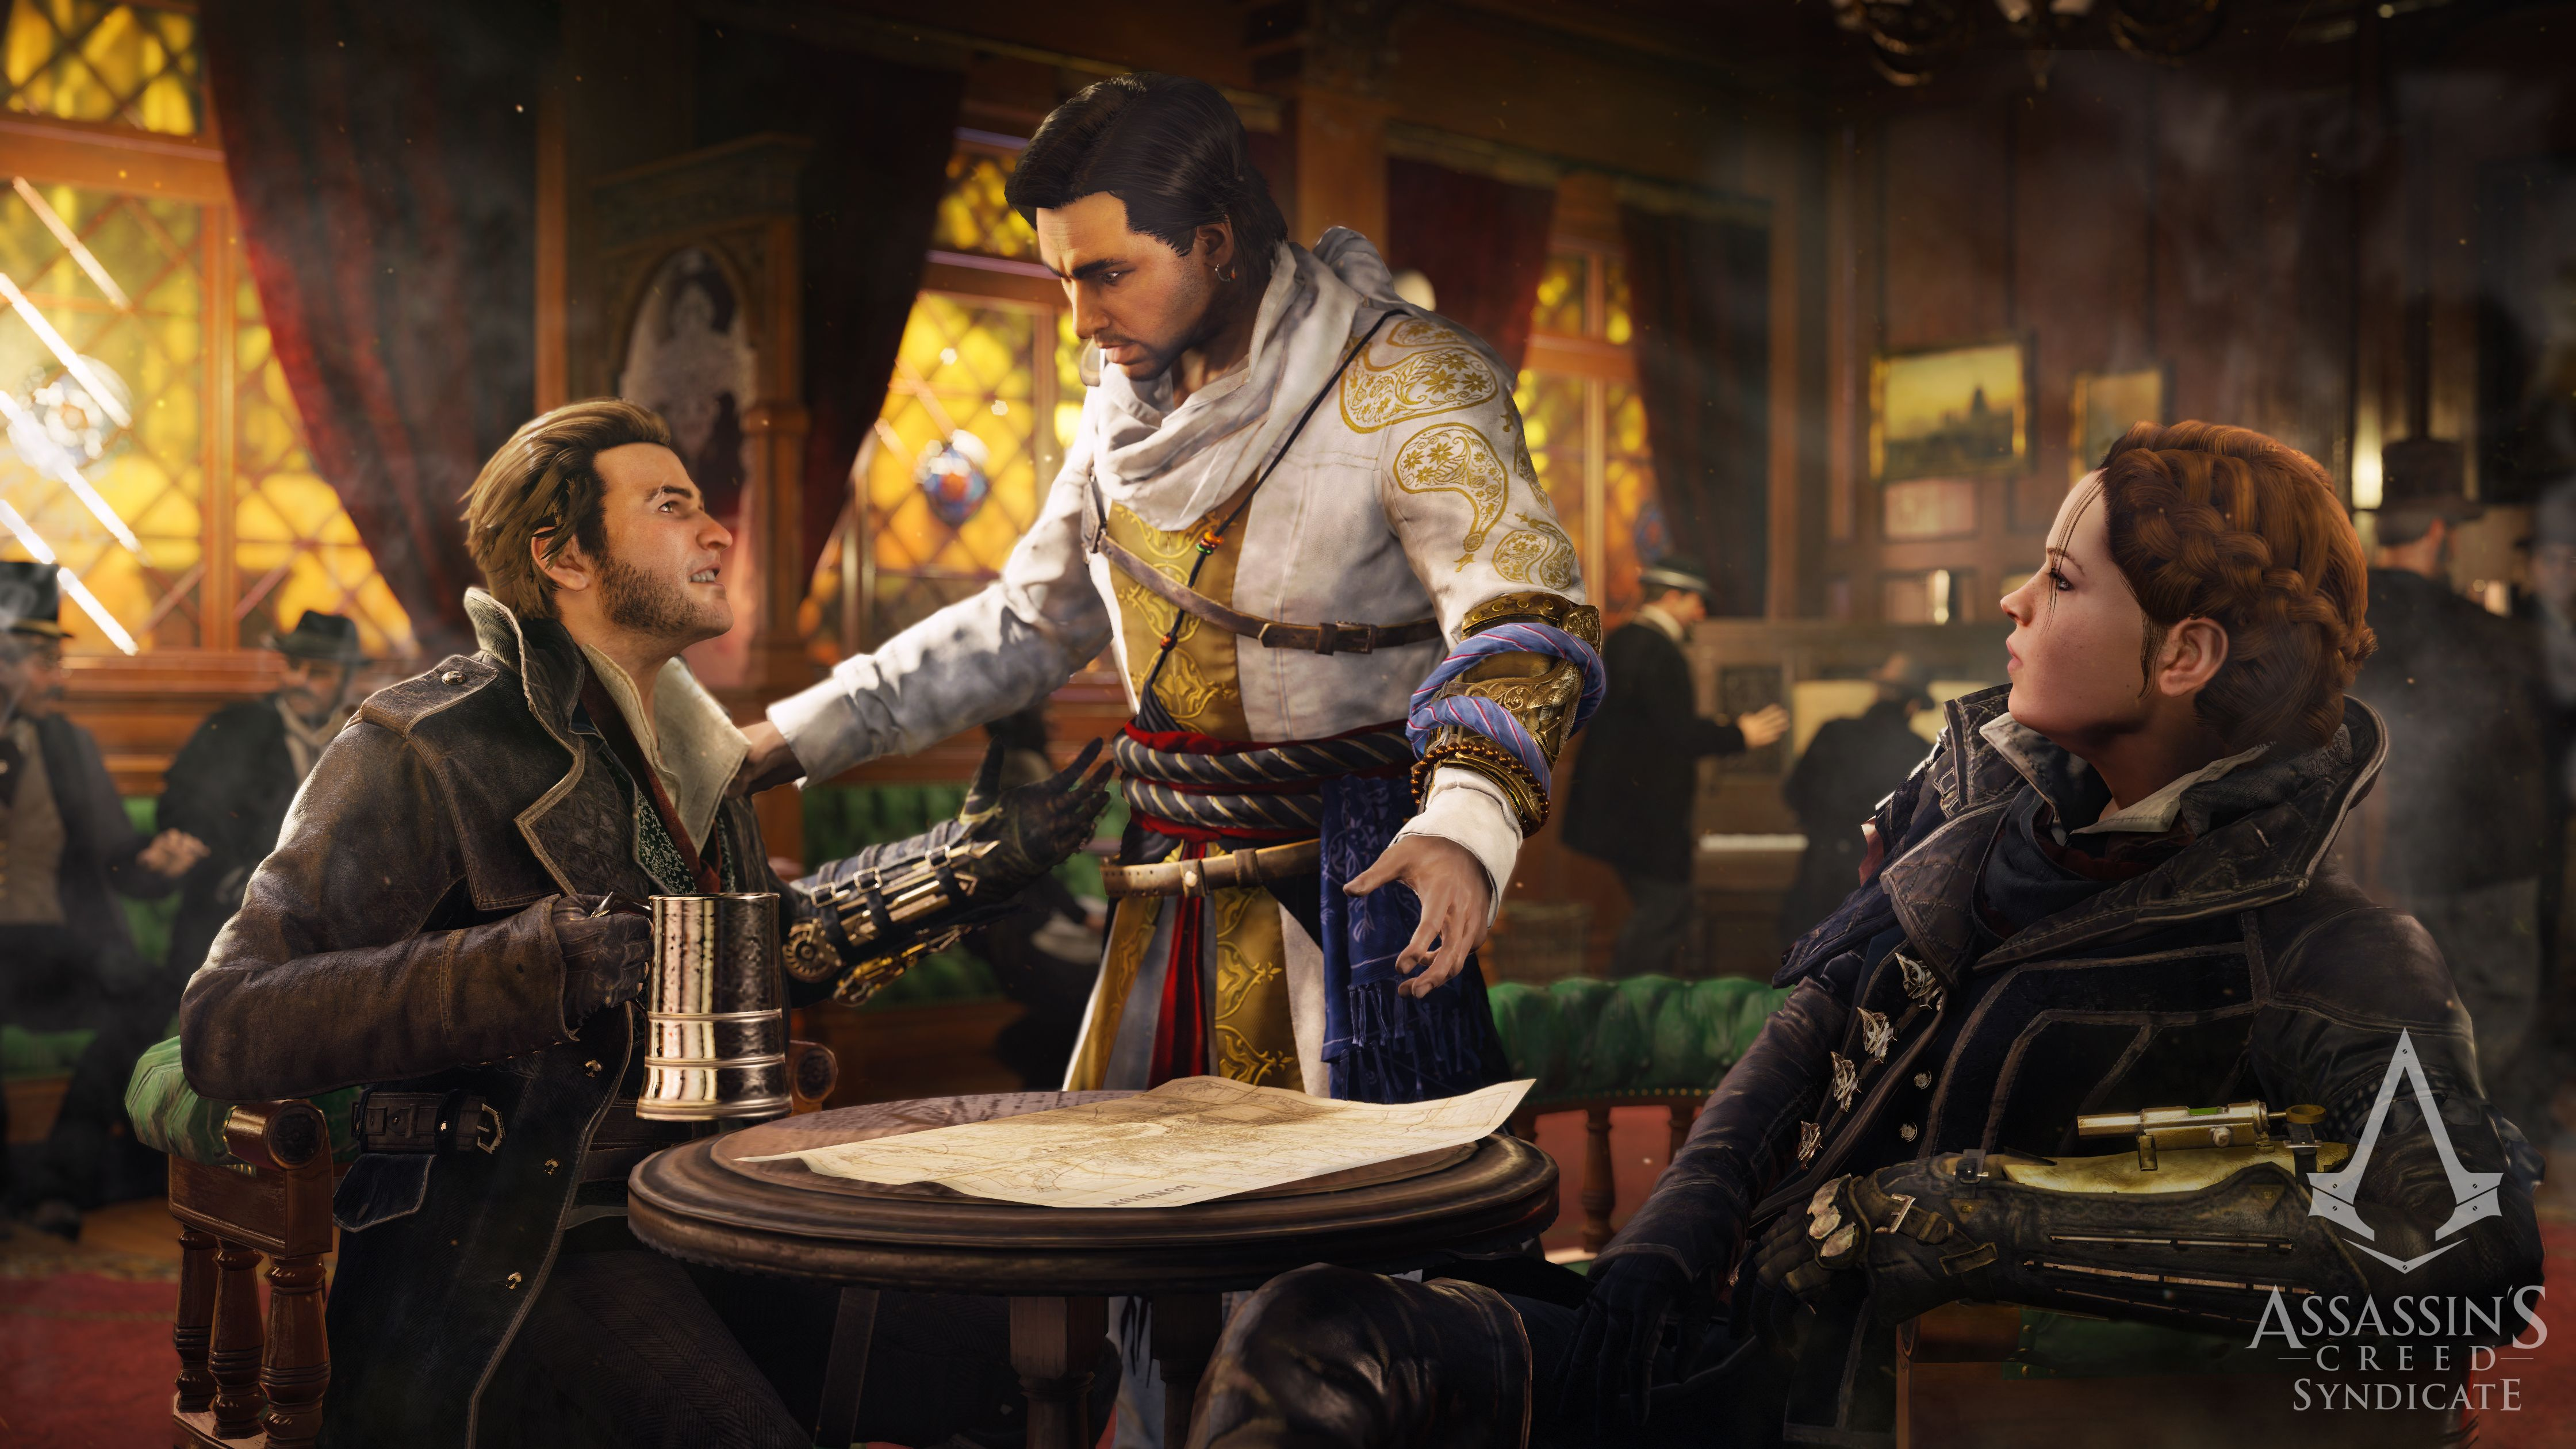 Nový trailer a gameplay z Assassin's Creed: Syndicate 110227